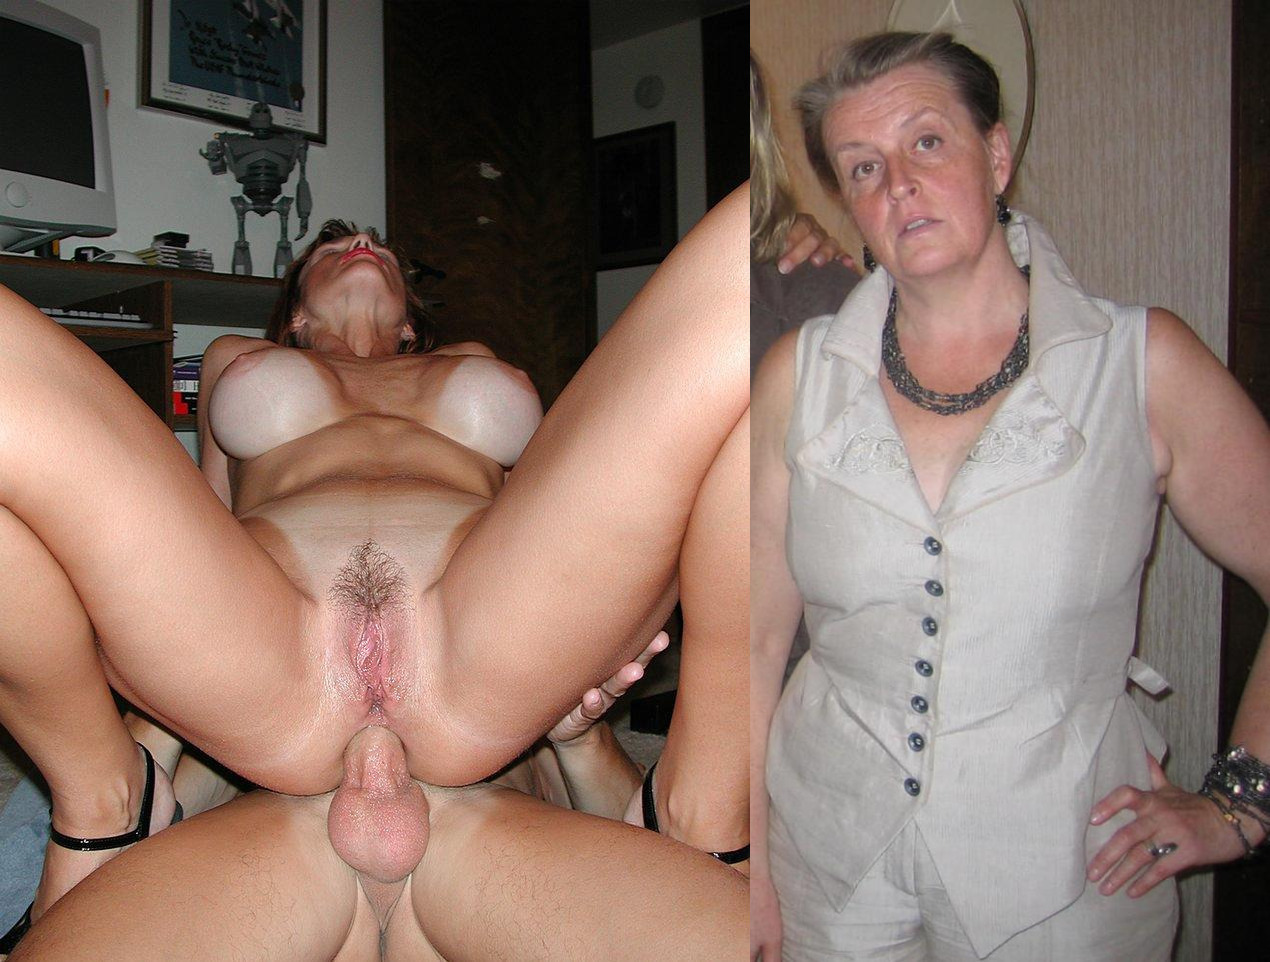 Certainly Homemade milf porn advise